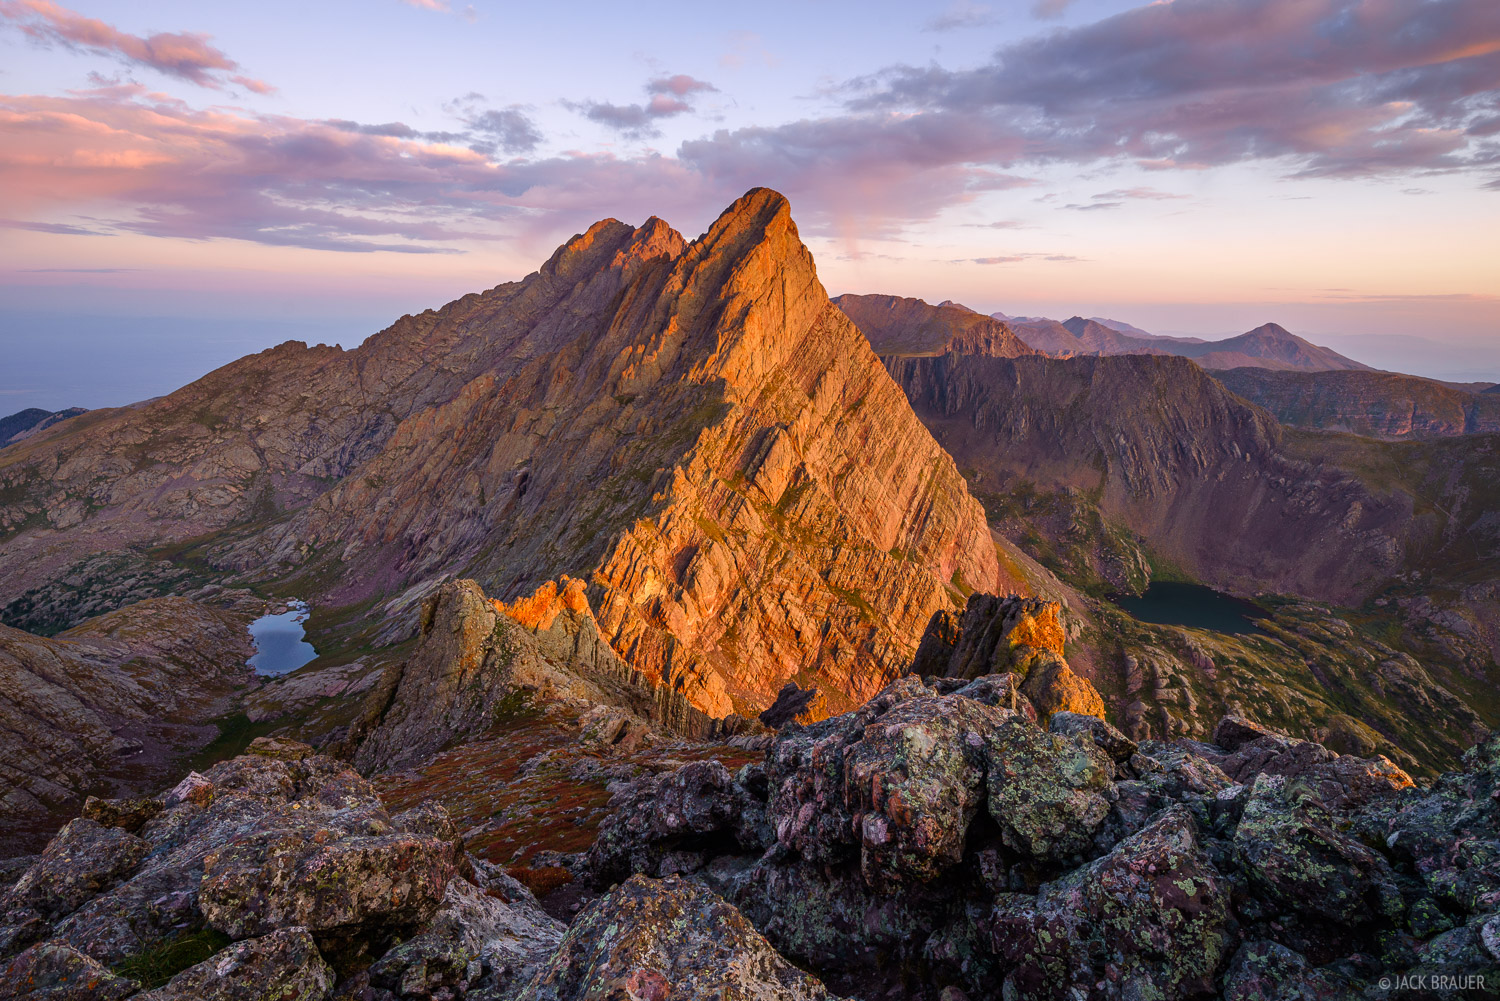 Broken Hand Peak, Colorado, Crestone Needle, Sangre de Cristos, 14er, sunrise, Sangre de Cristo Wilderness